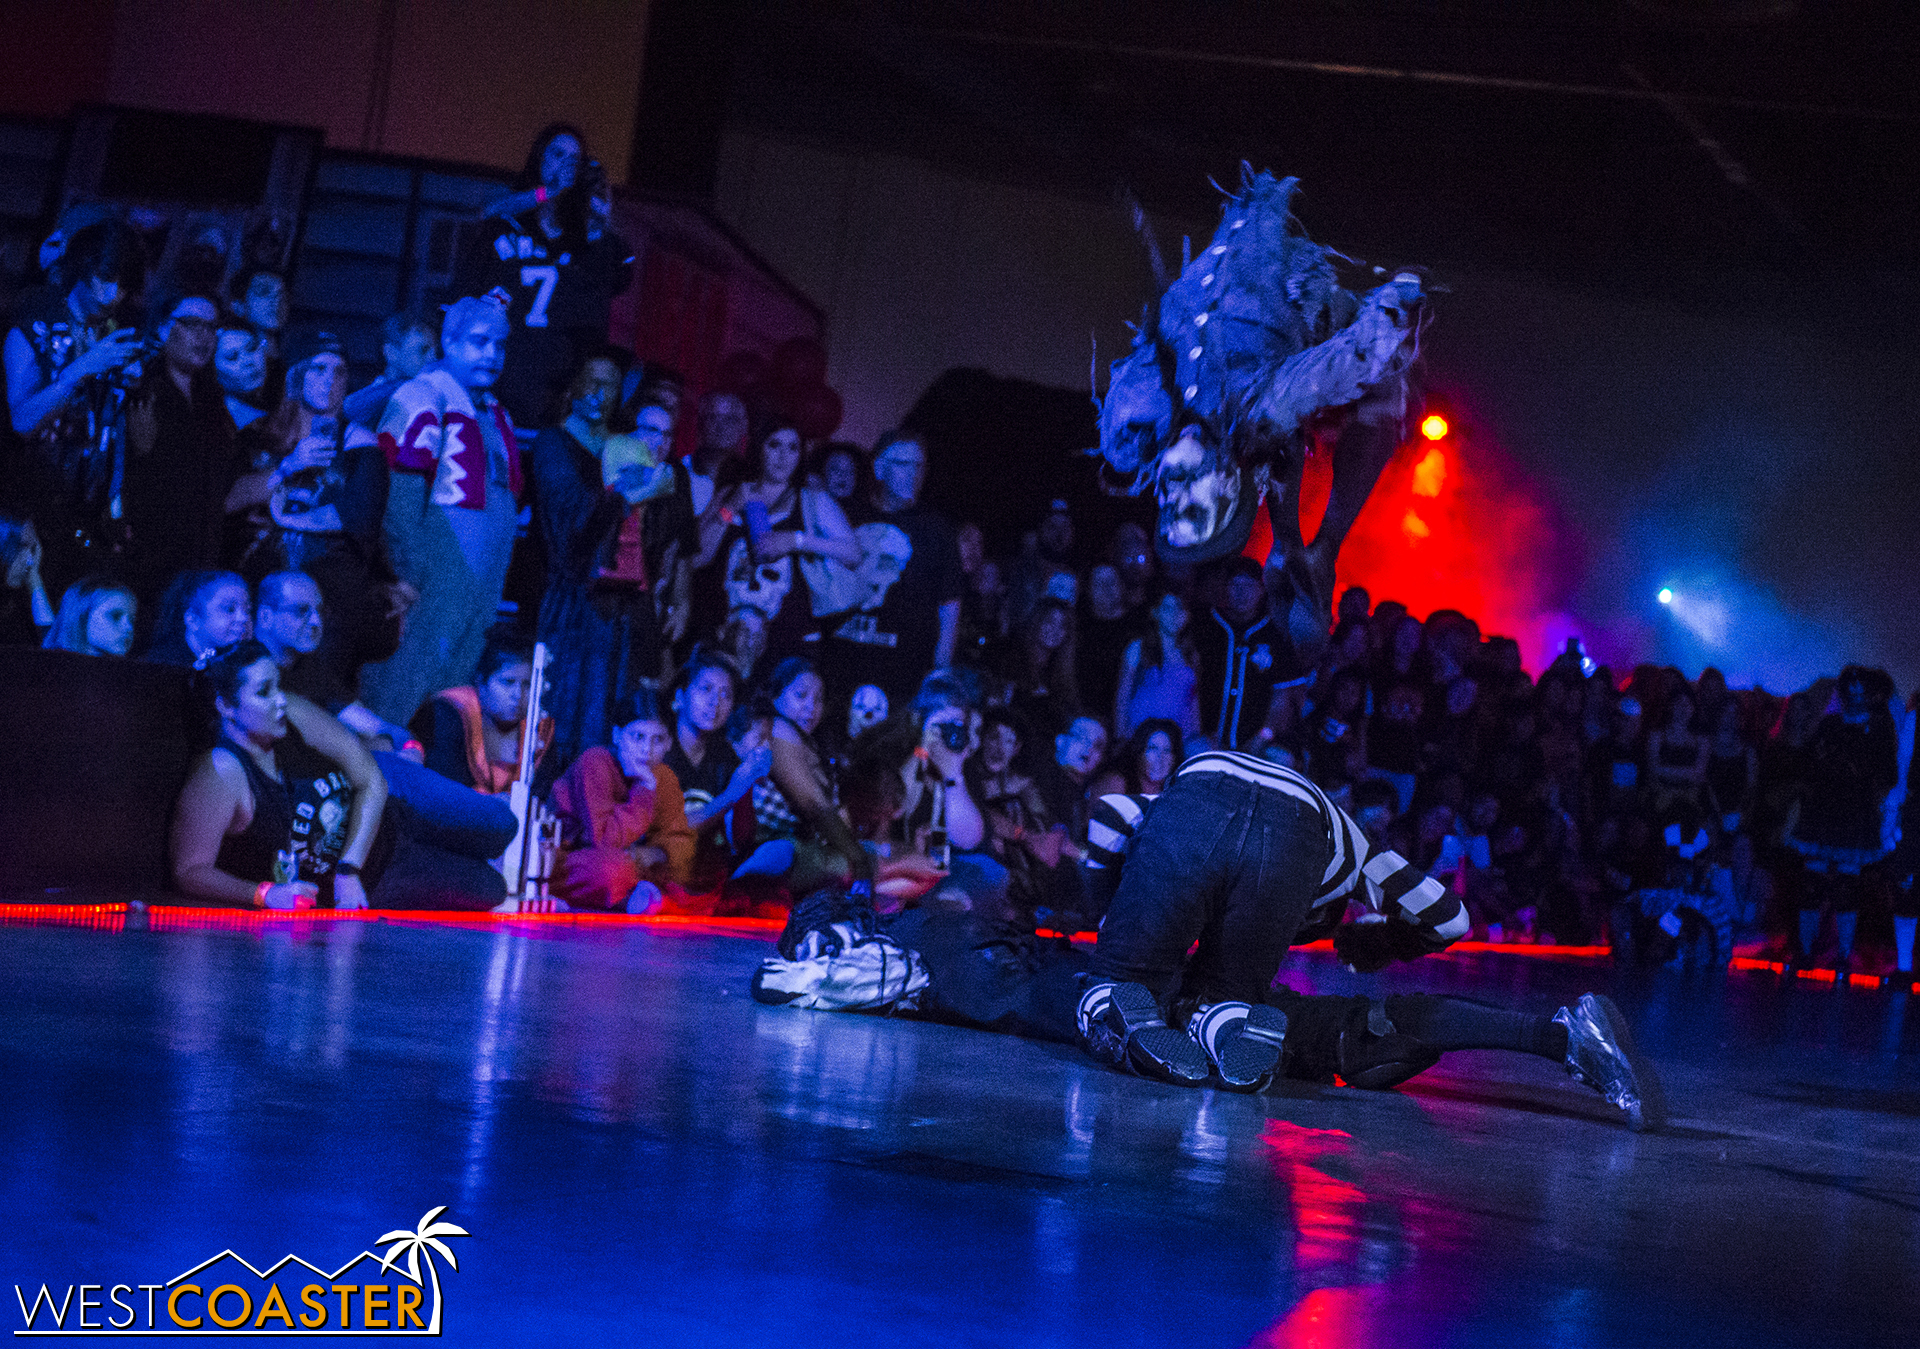 The Decayed Brigade will perform amazing acrobatic feats in the Hall of Shadows once again this year.